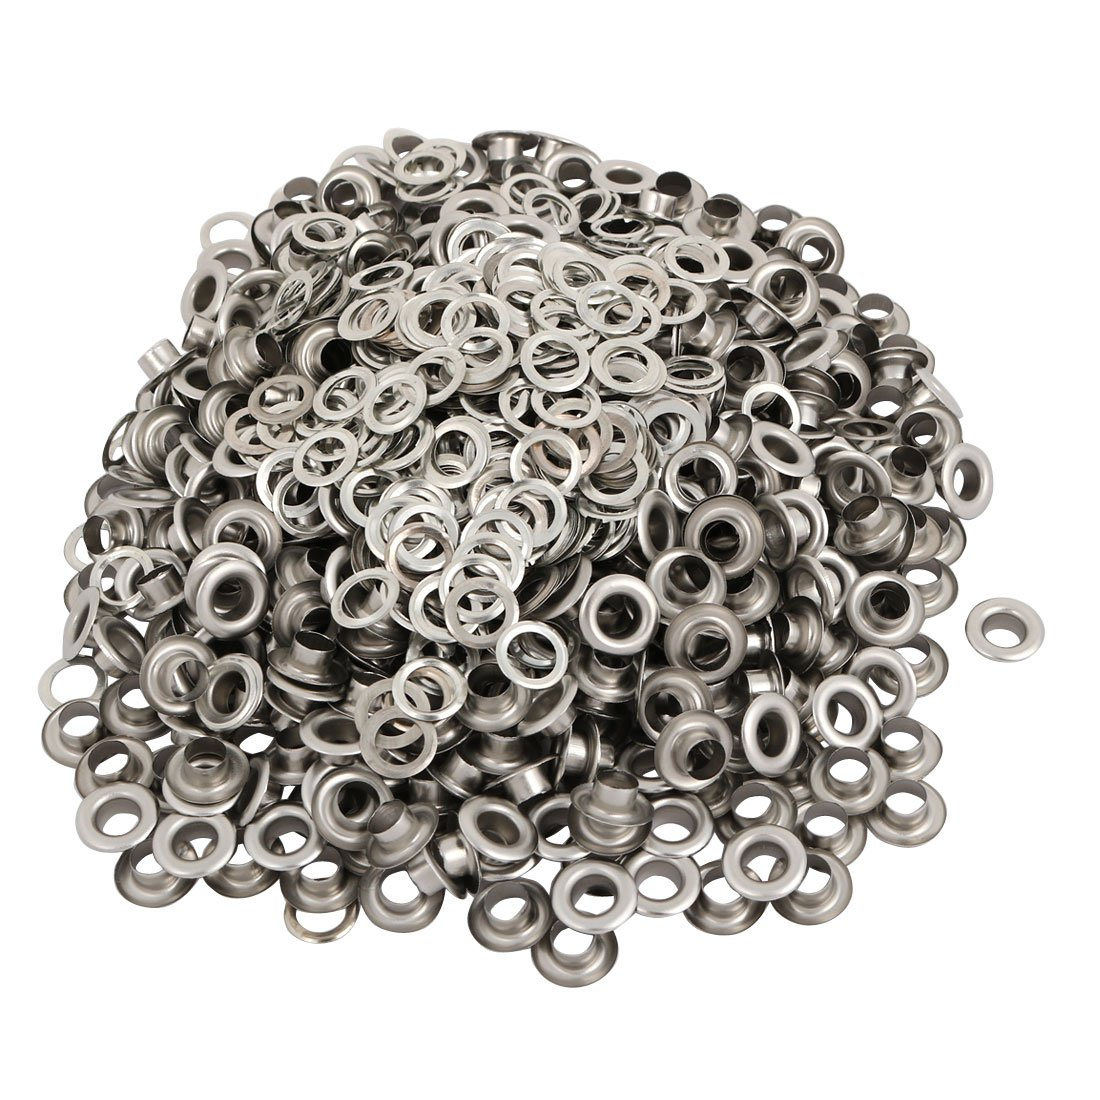 uxcell 500pcs 5mm Inner Dia 201 Stainless Steel Eyelet Grommets w Washers for Clothes Leather